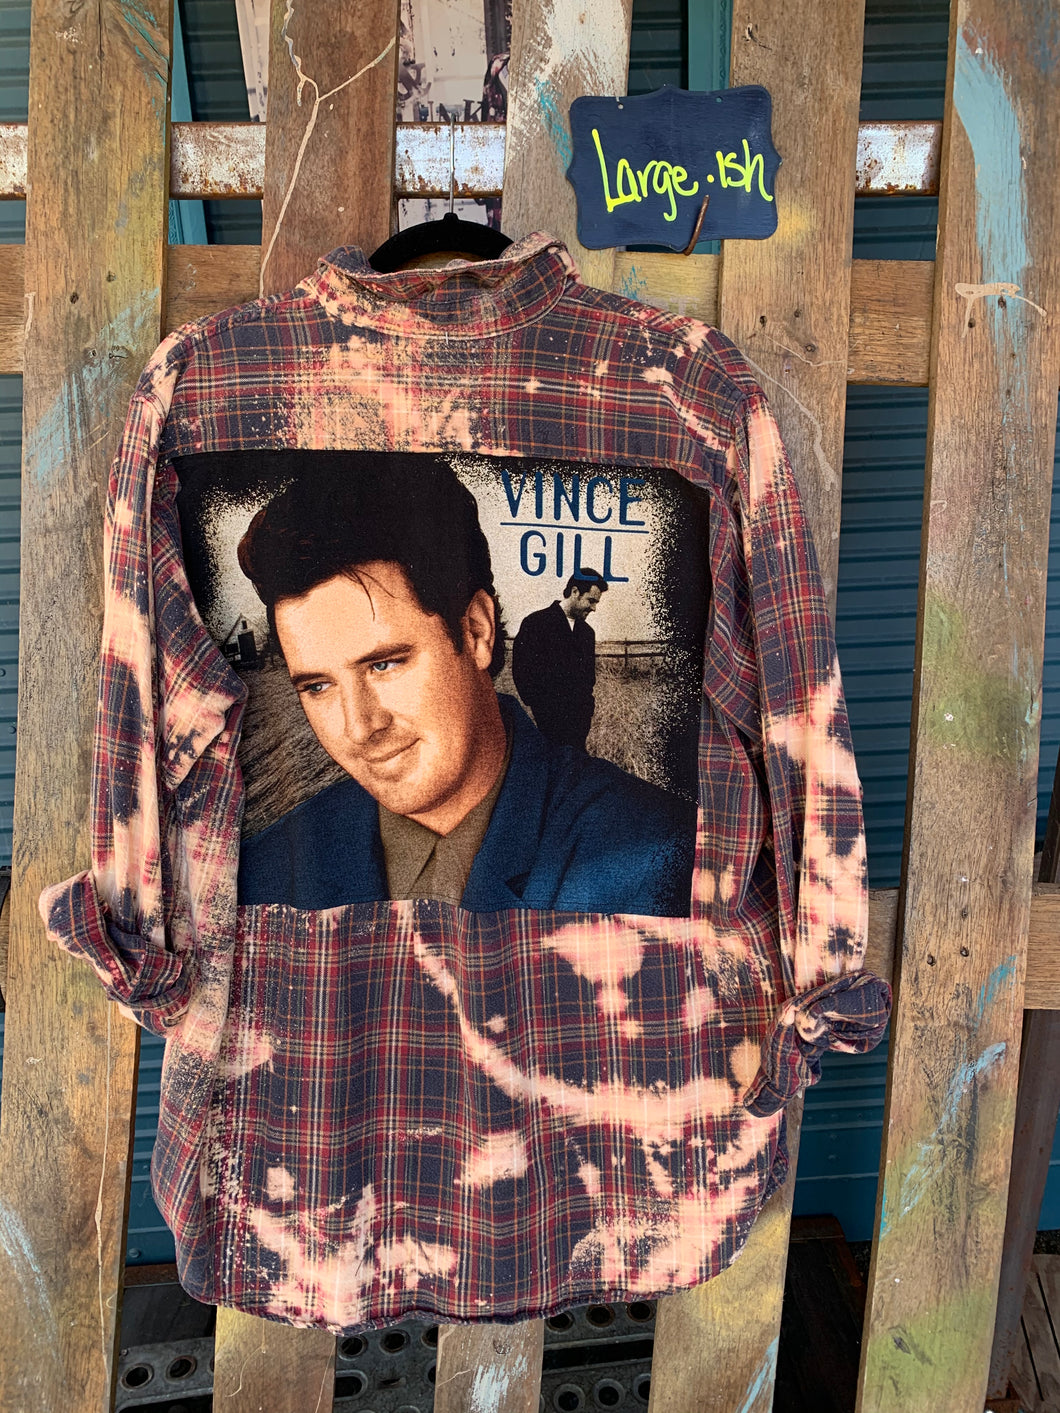 Large Vince Gill Patch Flannel